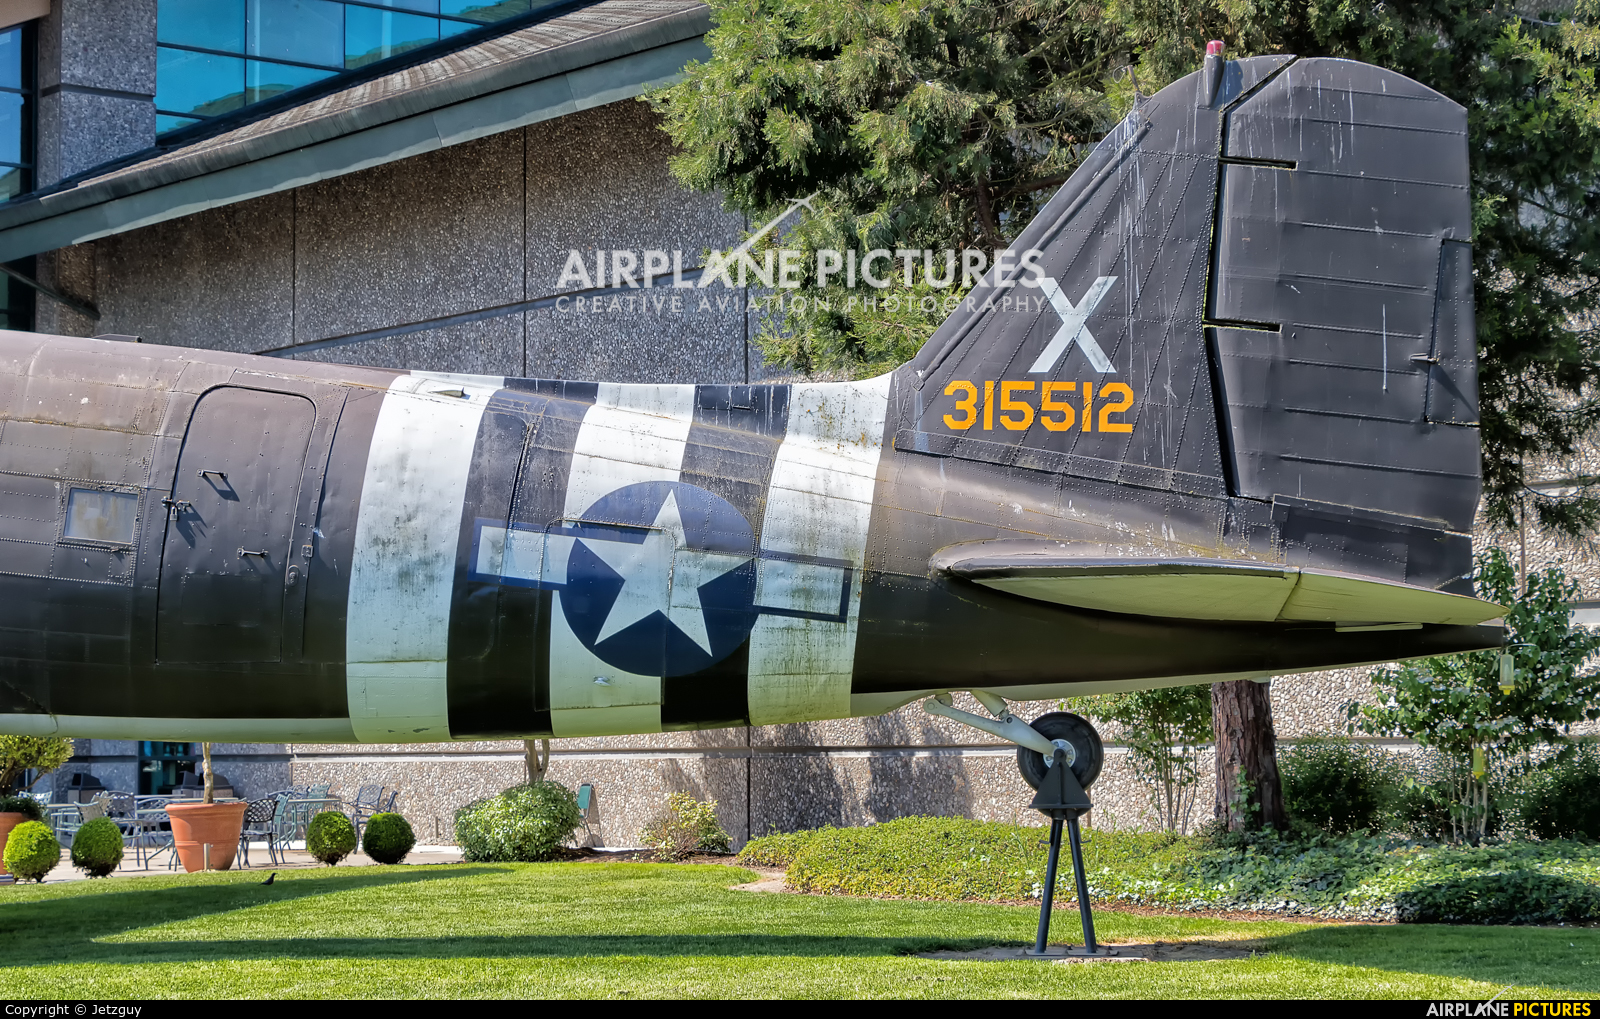 USA - Air Force 315512 aircraft at McMinnville - Evergreen Aviation & Space Museum